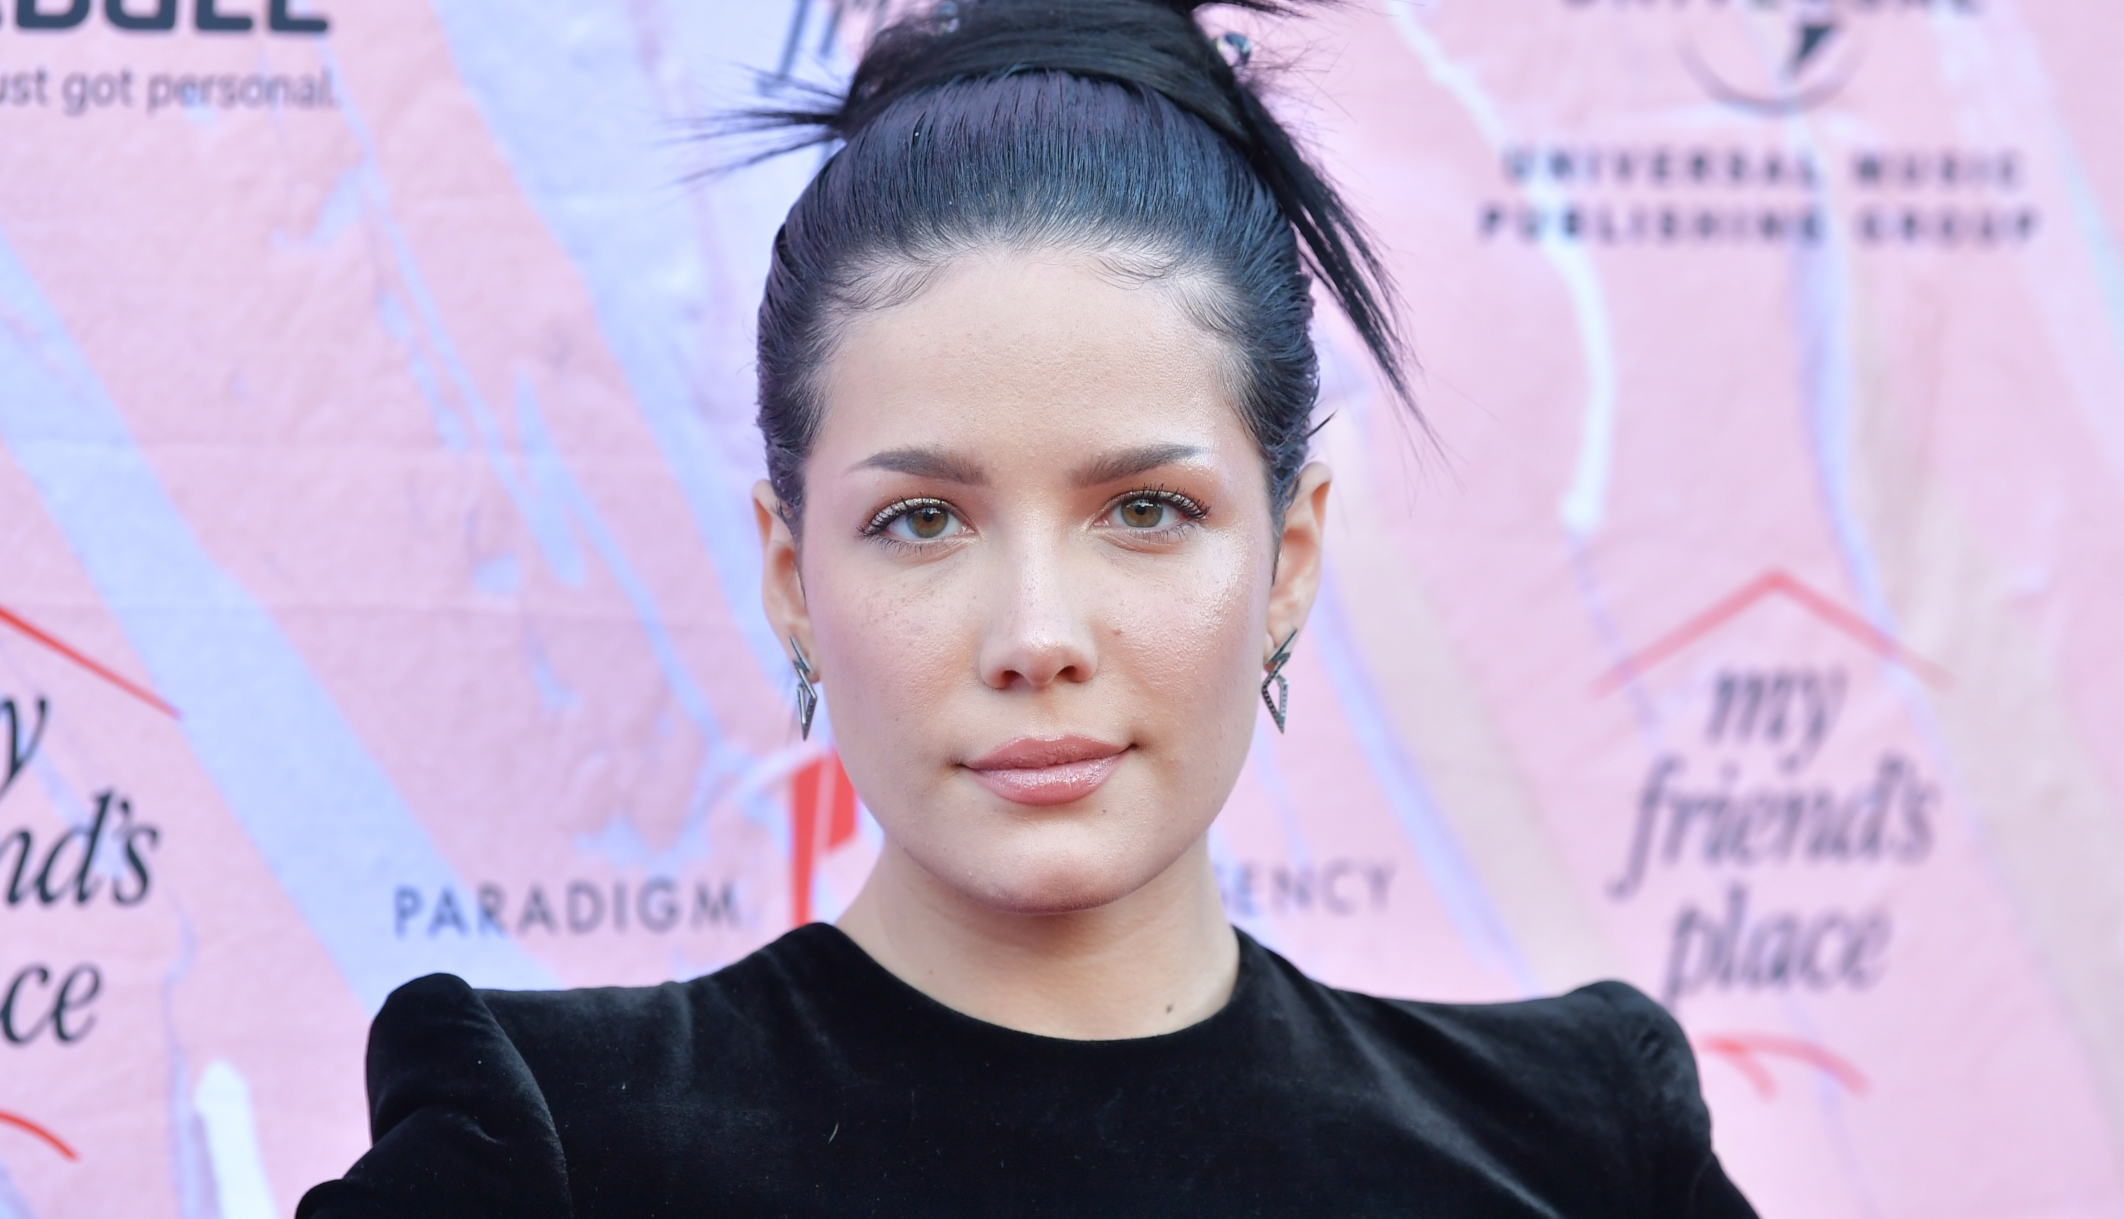 Halsey seen attending the 'Ending Youth Homelessness' gala on April 6, 2019